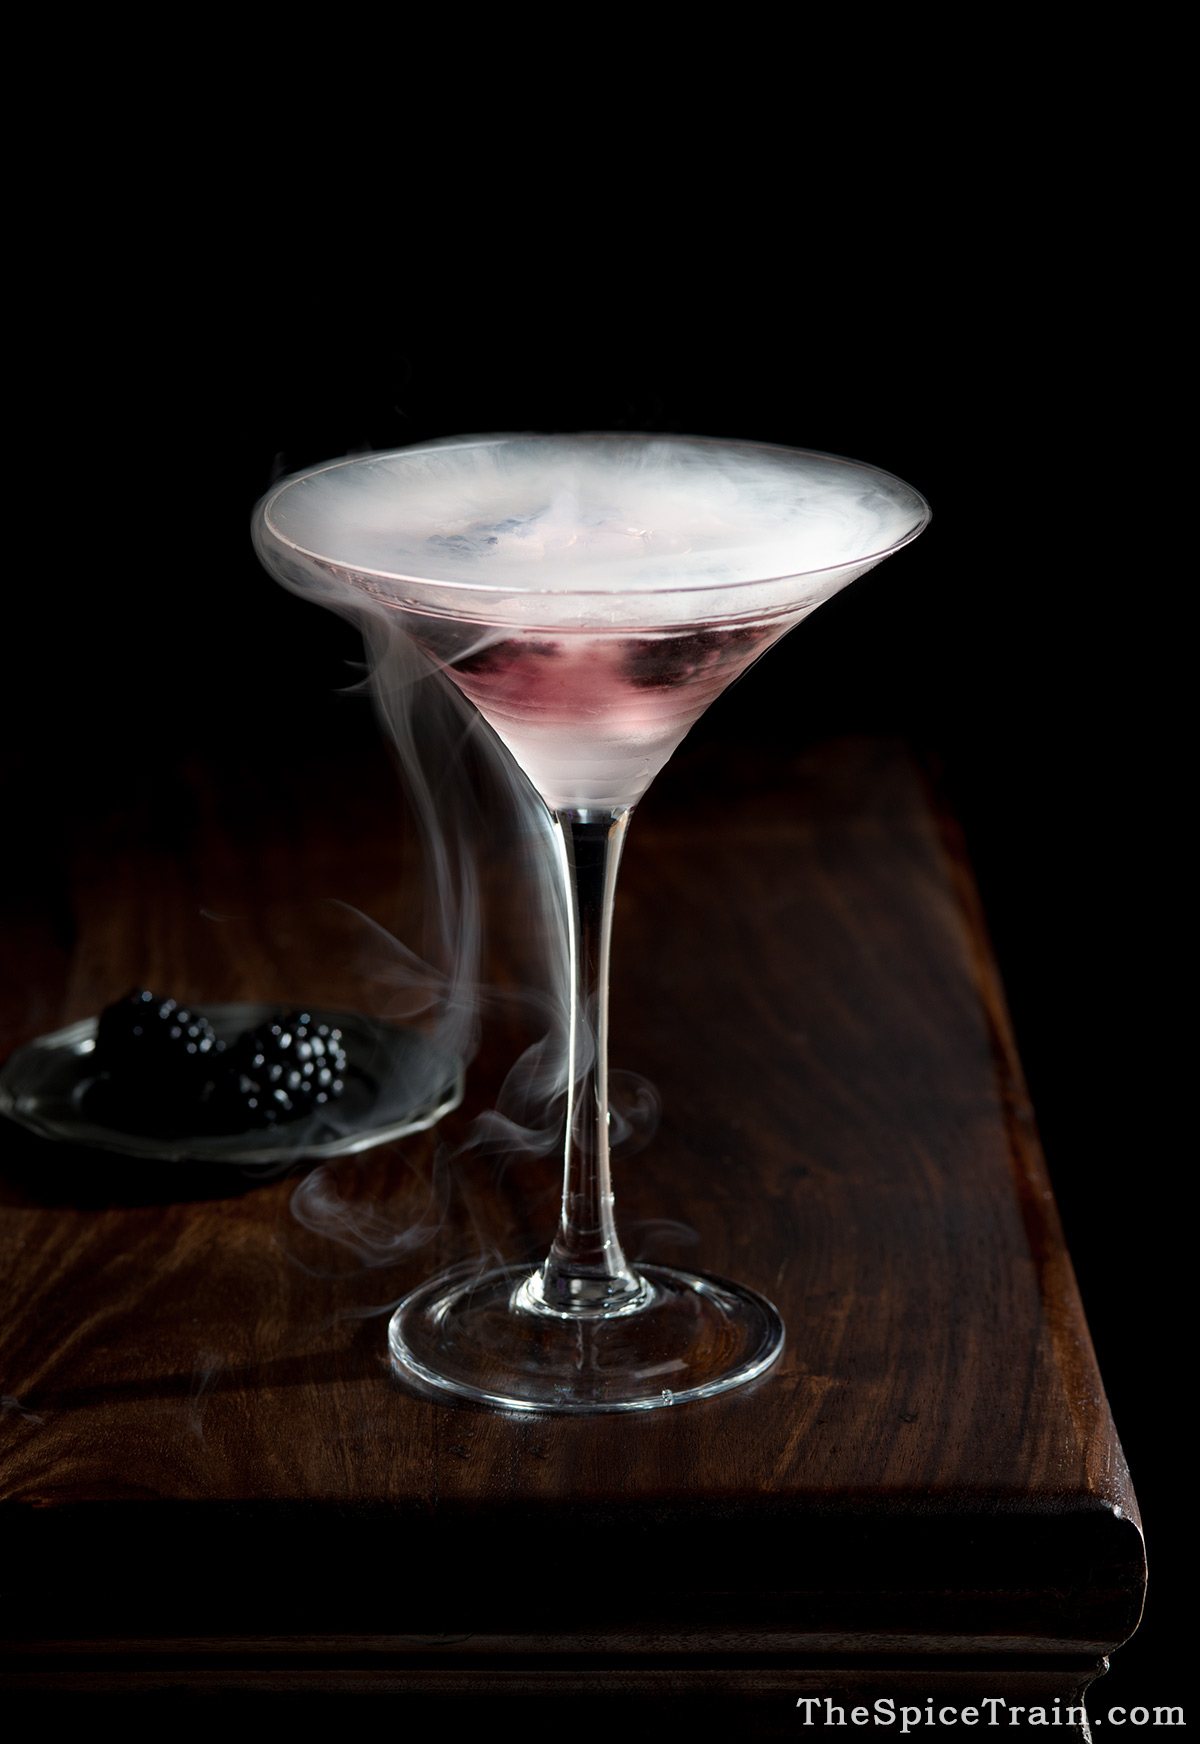 A glass filled with a bramble cocktail and smoke from dry ice.